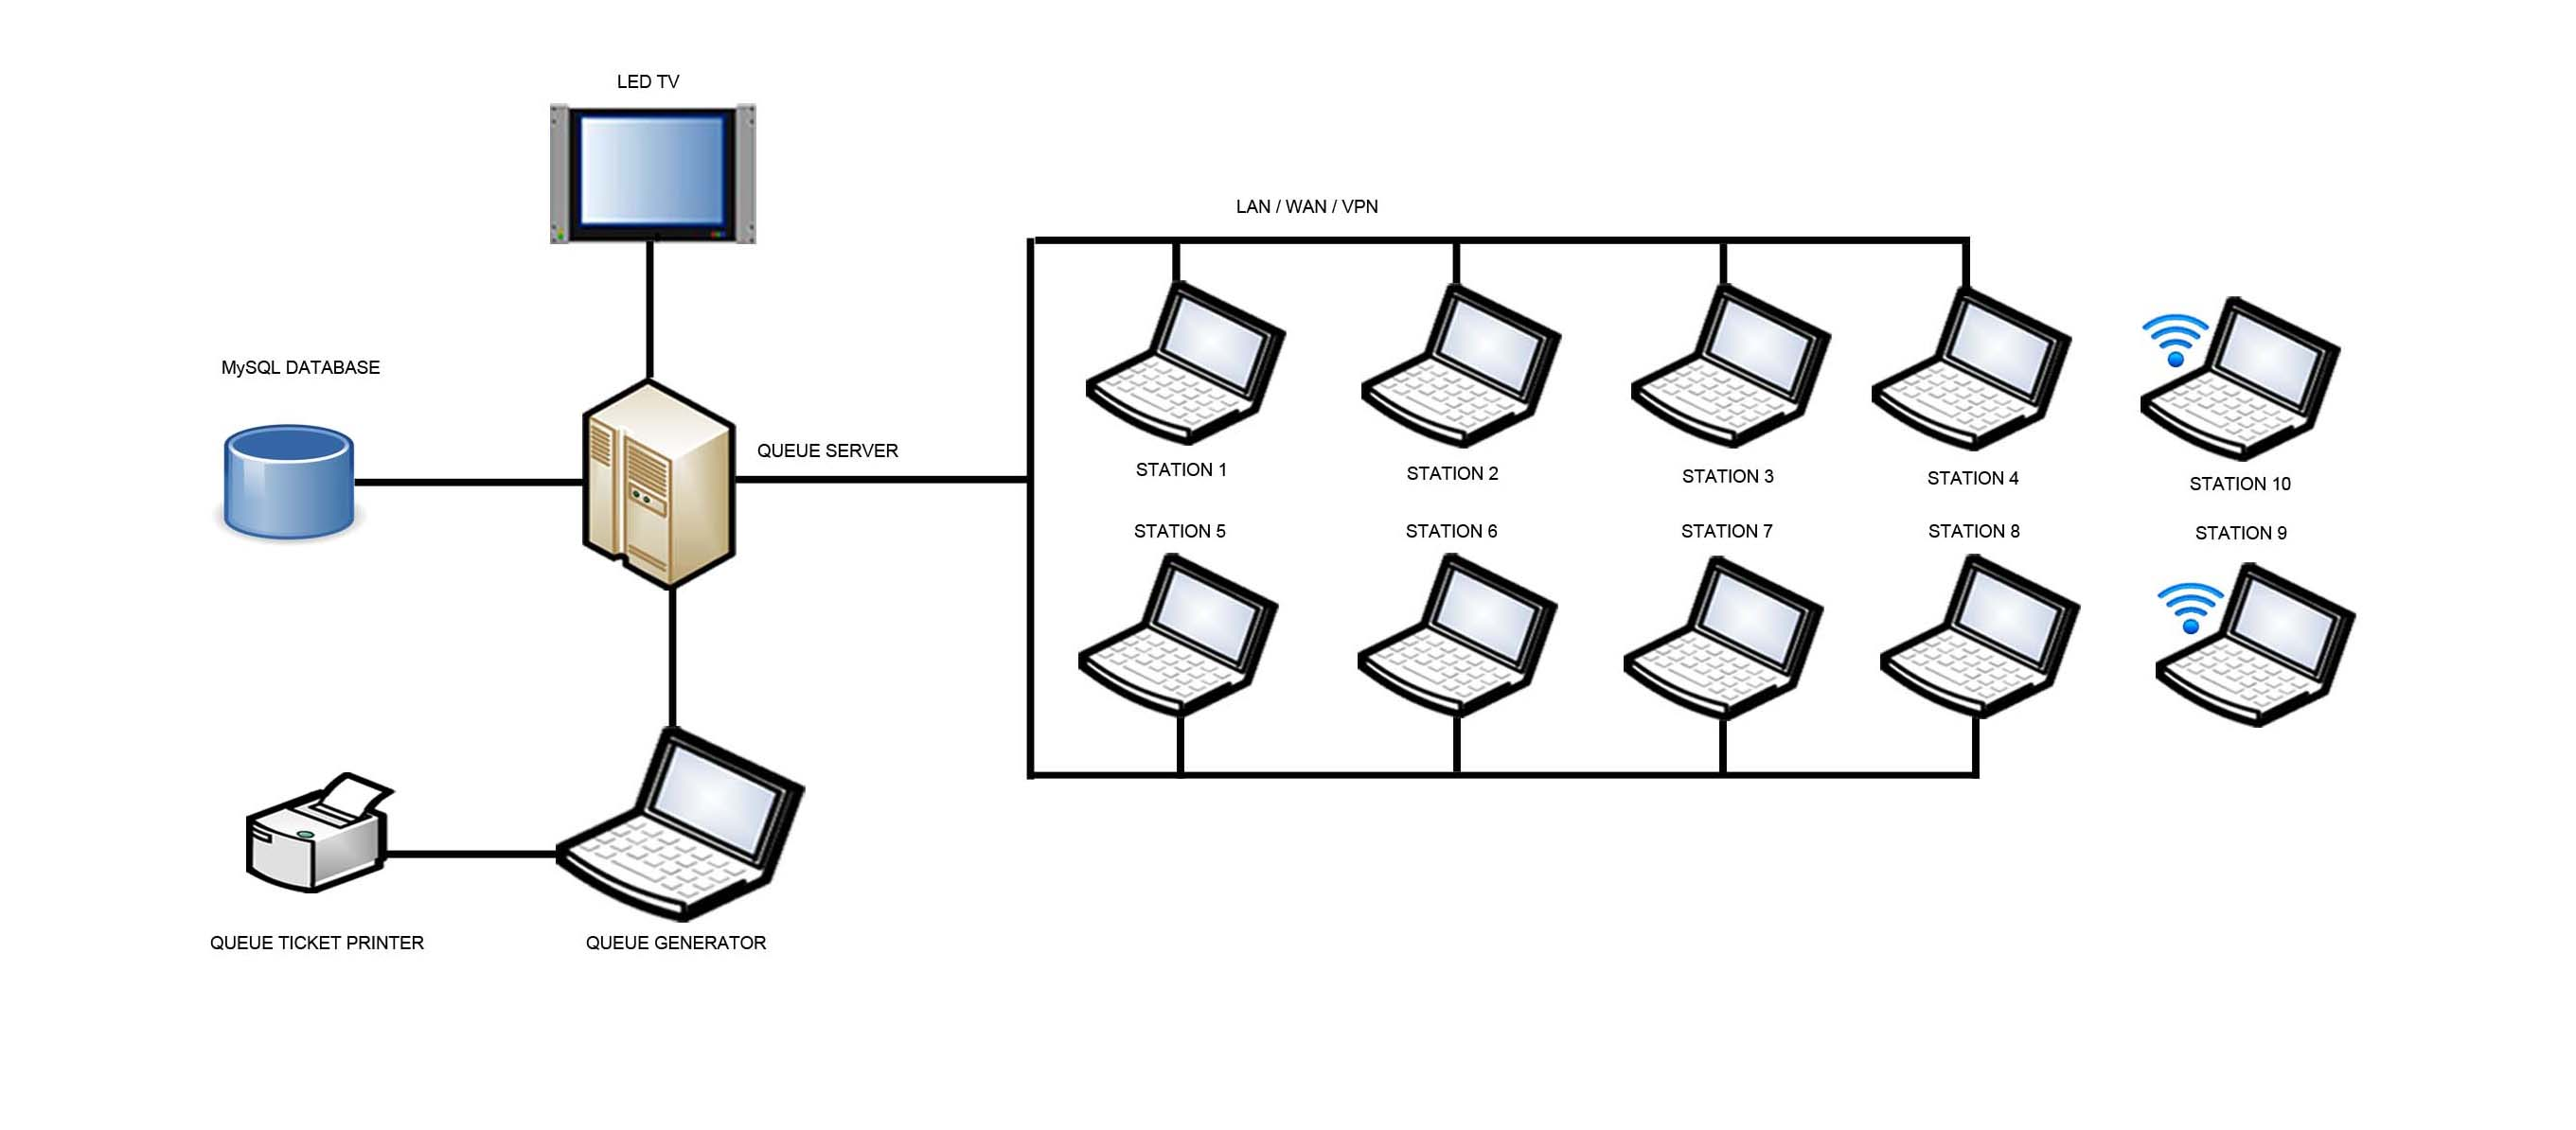 Network Diagram Using PC or Laptops